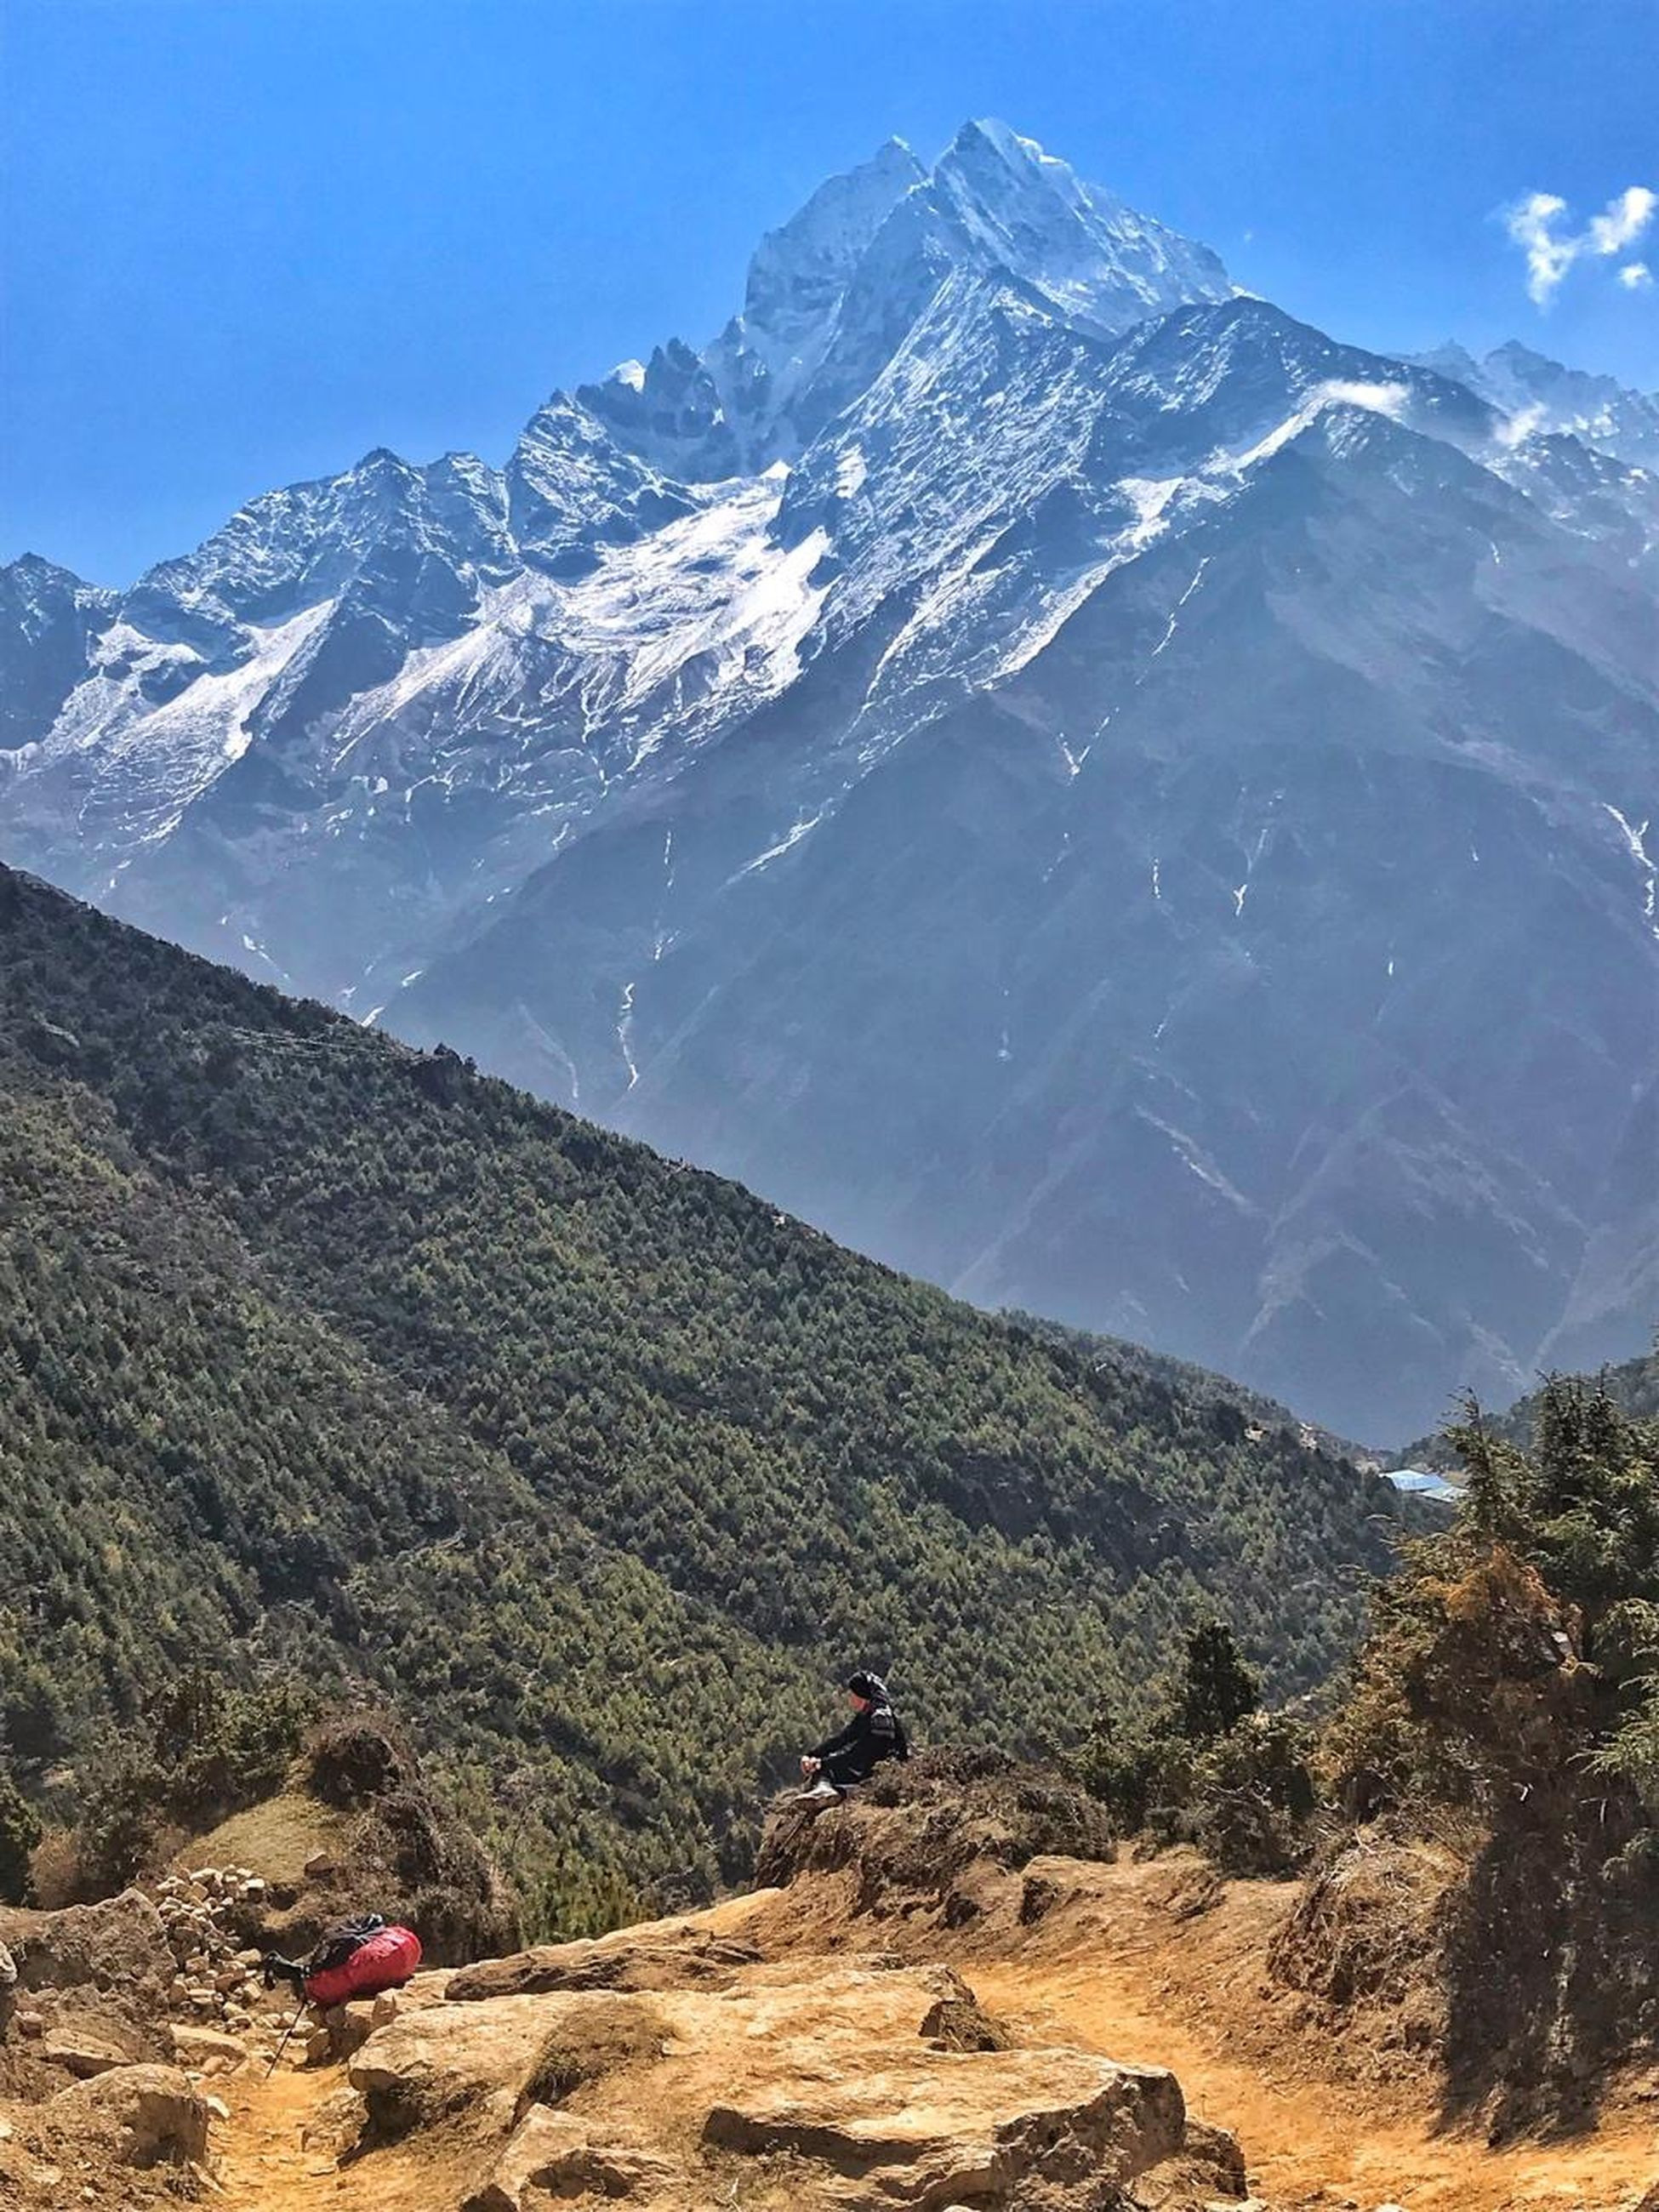 mountain, scenics - nature, beauty in nature, mountain range, tranquil scene, tranquility, environment, landscape, sky, non-urban scene, nature, day, adventure, activity, hiking, idyllic, leisure activity, rock, remote, outdoors, mountain peak, snowcapped mountain